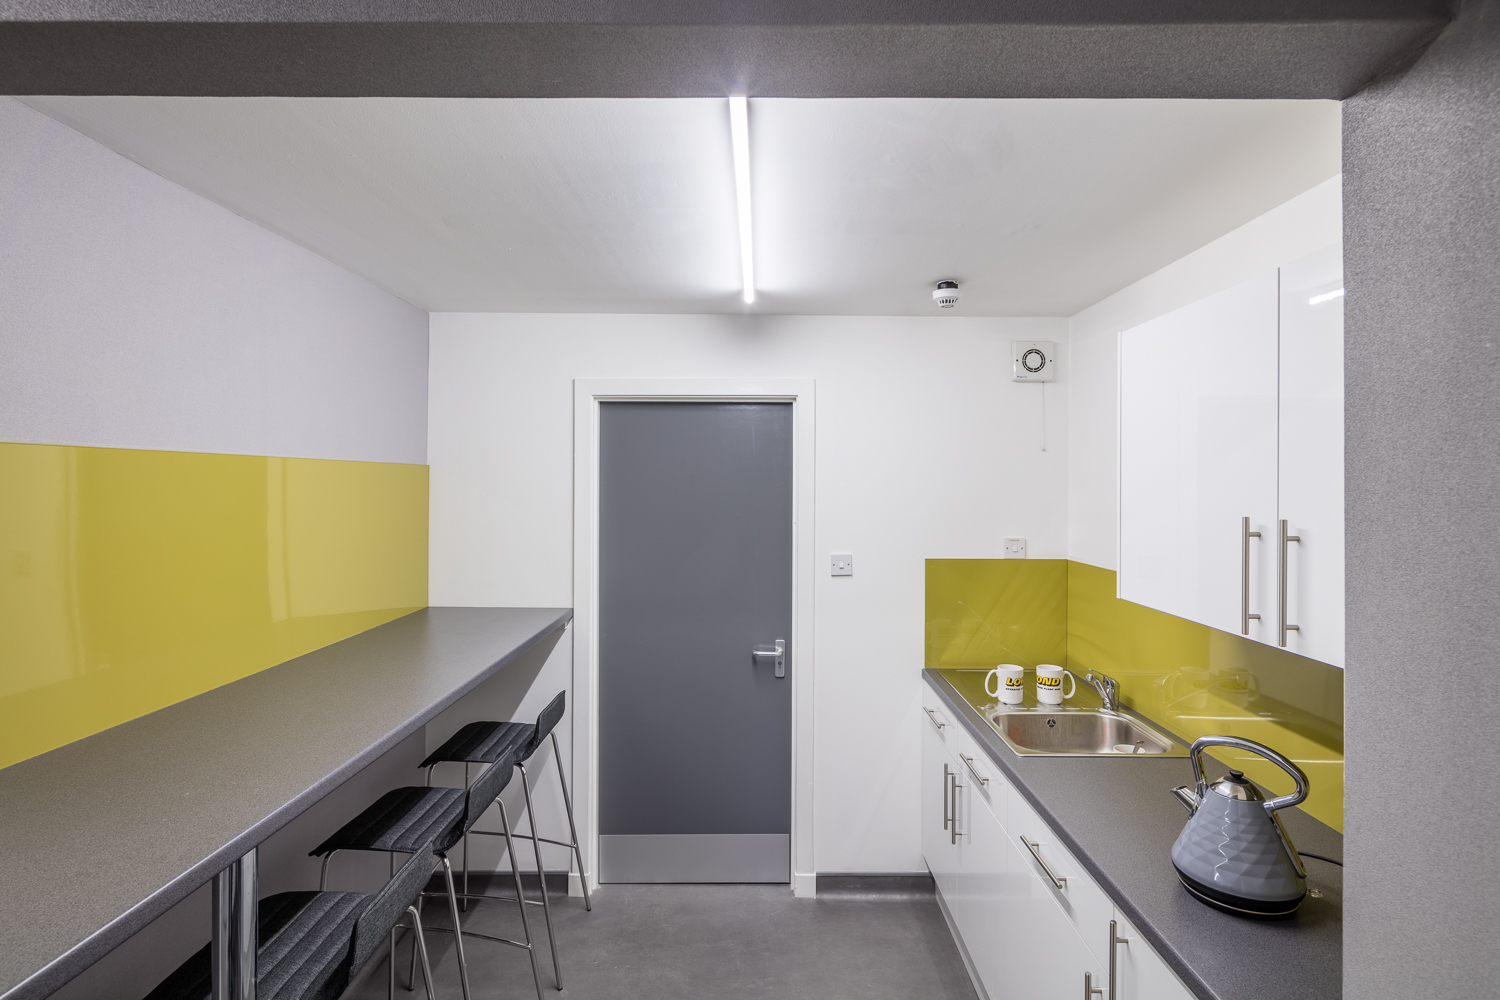 office kitchen.jpg